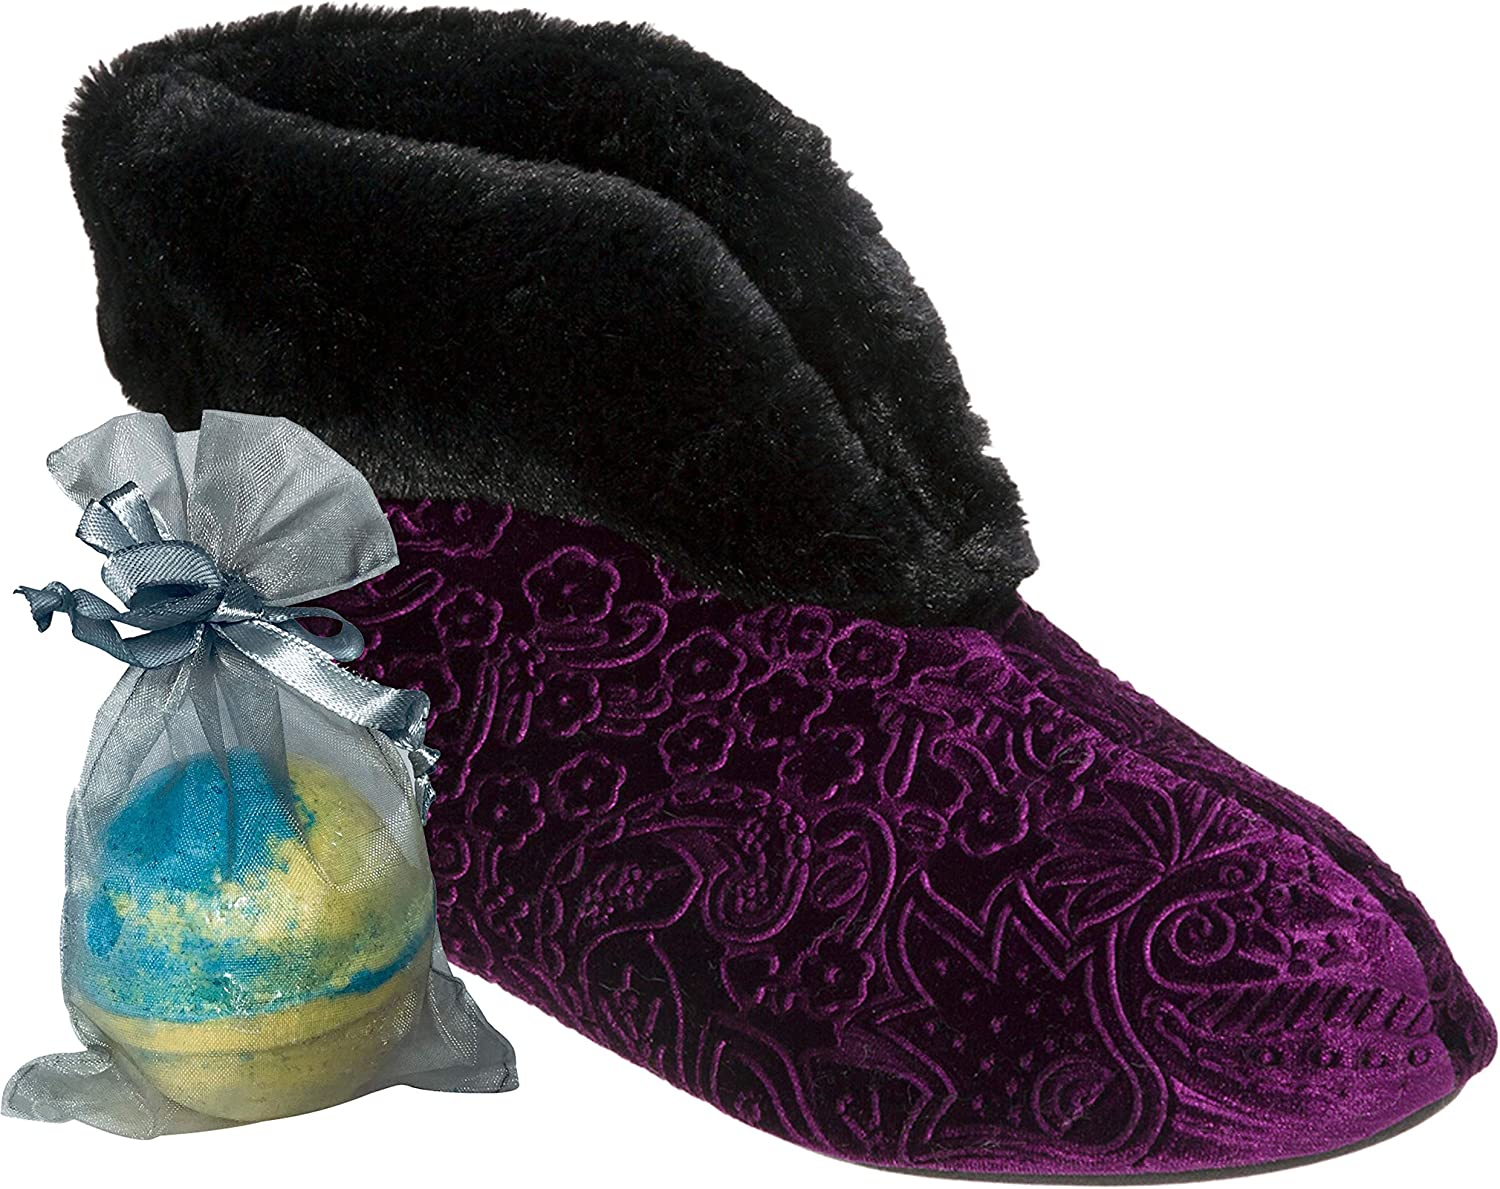 Jennjuli Women's Slippers Embossed Velour Bootie with Silky Pile Cuff and Memory Foam for Warmth Style and Comfort by Dearfoams